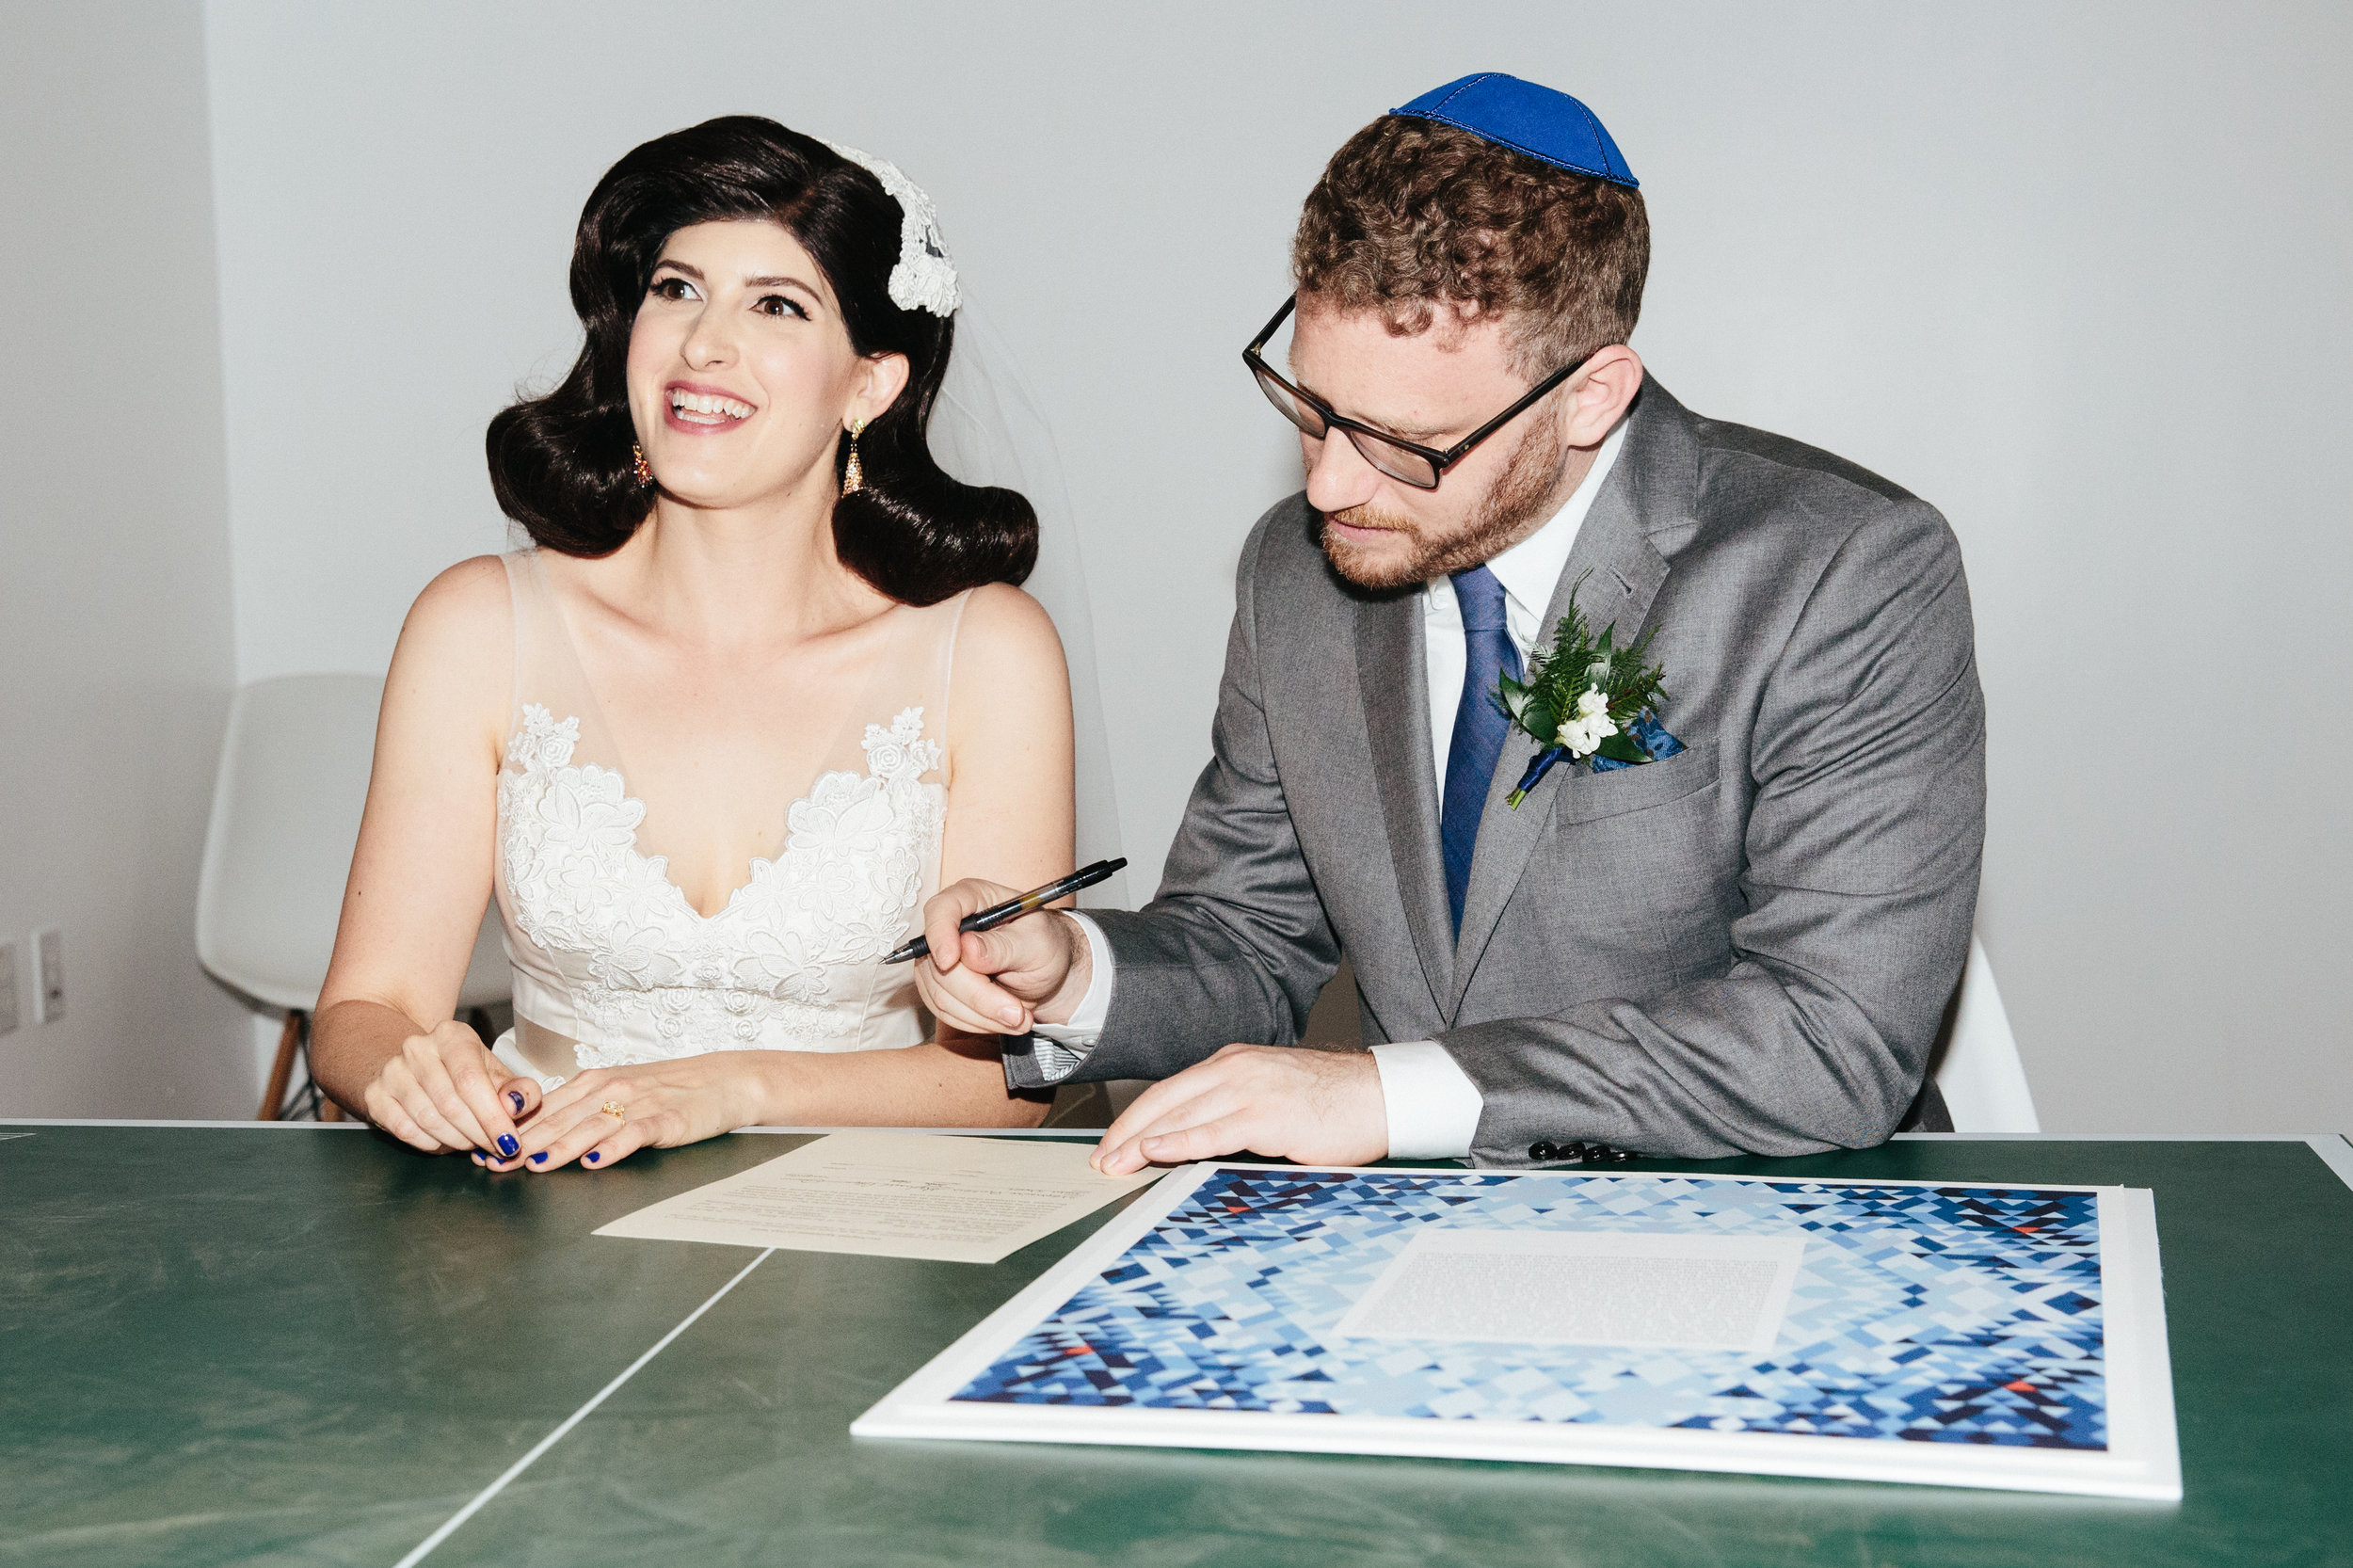 Ketubah Signing  at LA River Studios, Los Angeles, CA on a ping pong table. Photographer:  Our Labor of Love